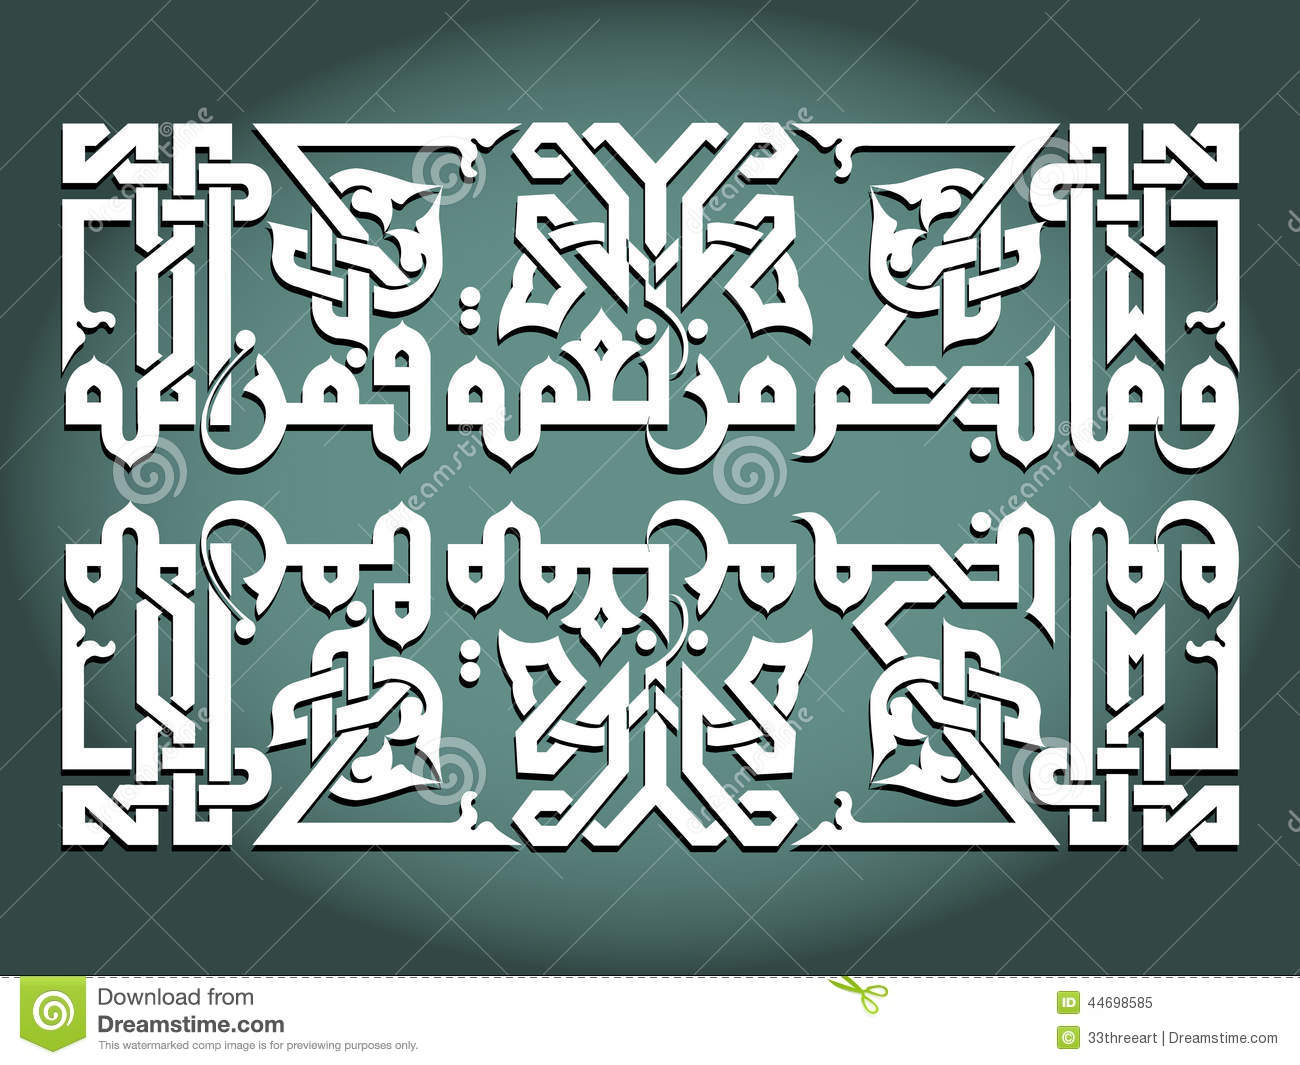 How to write arabic in illustrator cs3